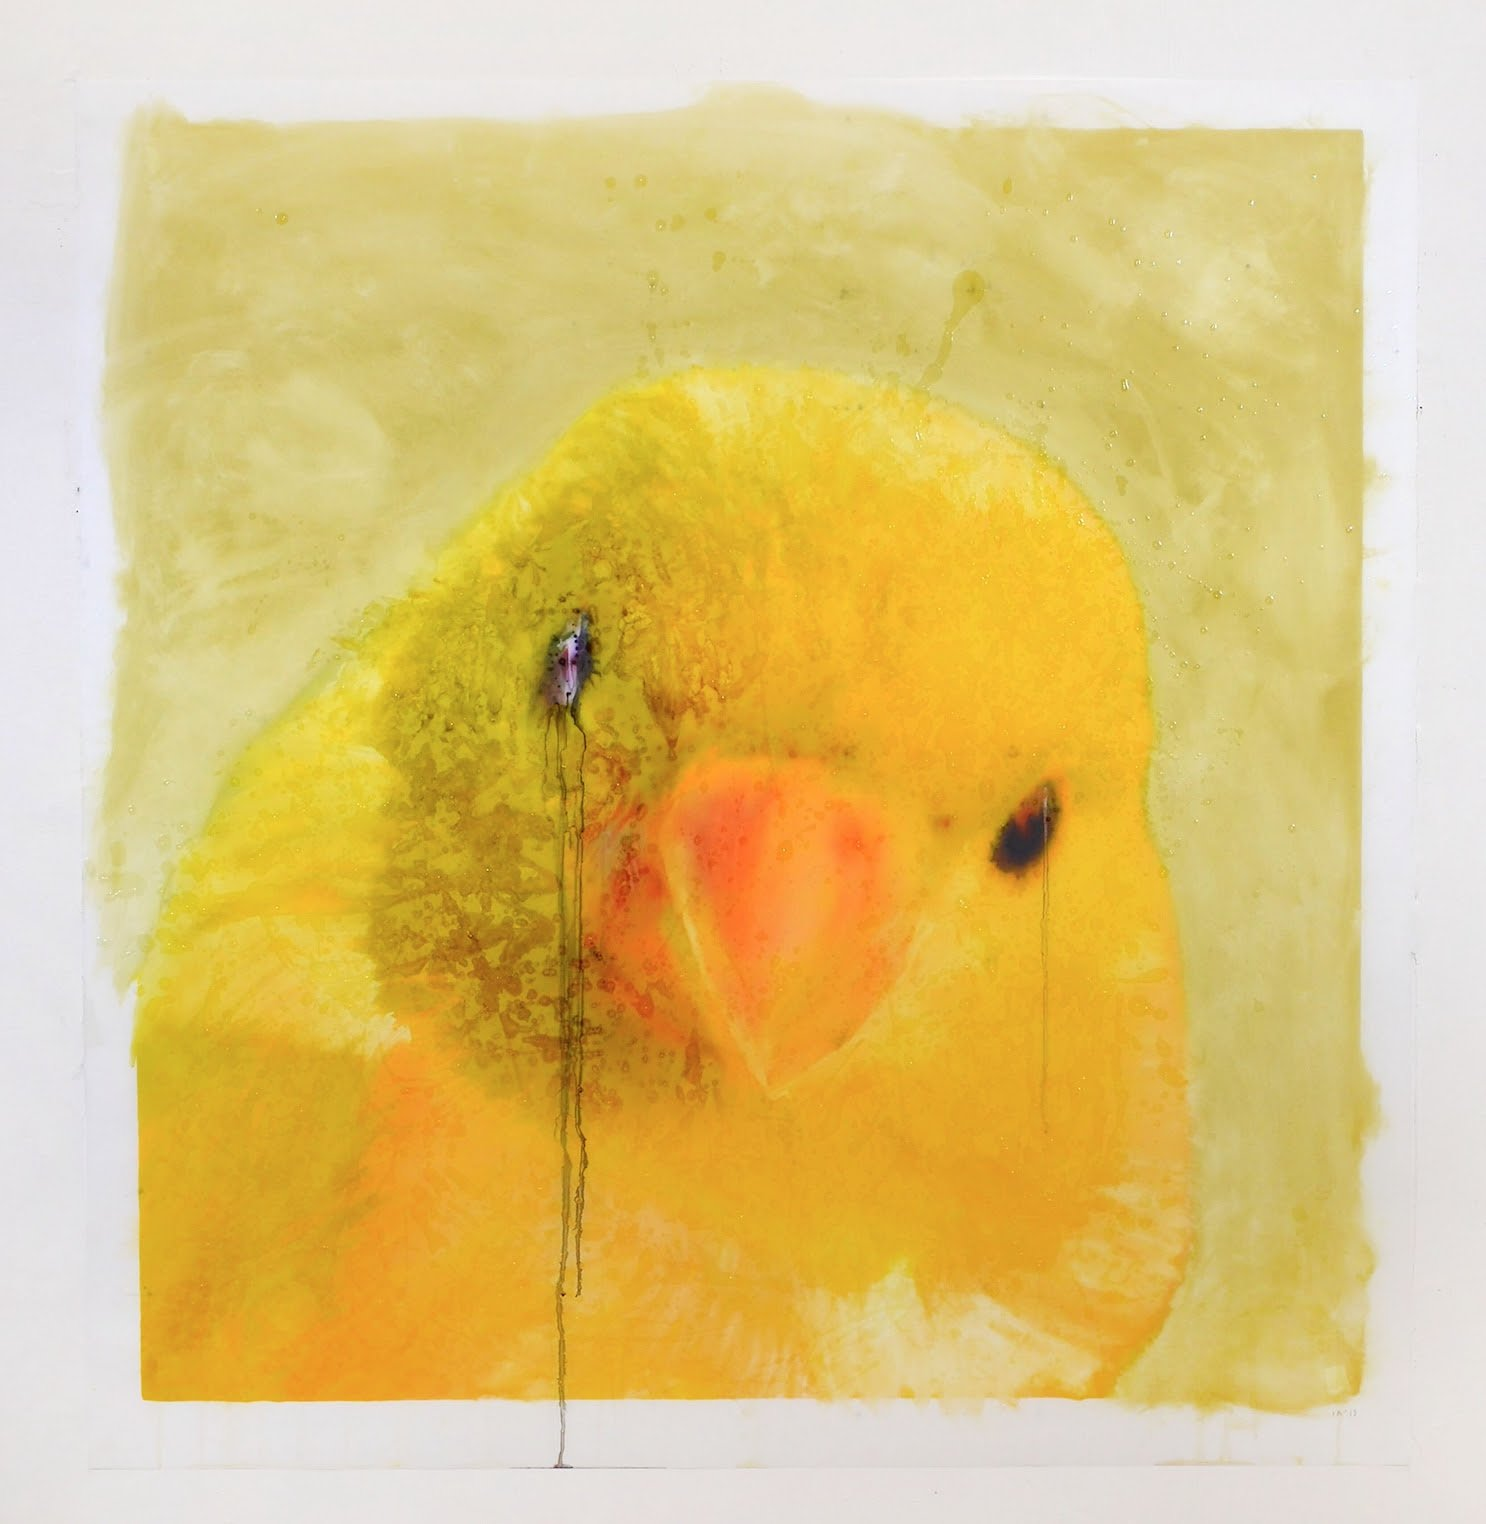 Ida Applebroog, 'Portraits (Canary),' 2019. Ultrachrome ink and gel on mylar. 127 x 121.9 cm / 50 x 48 in. © Ida Applebroog. Courtesy Hauser & Wirth Photo: Emily Poole.